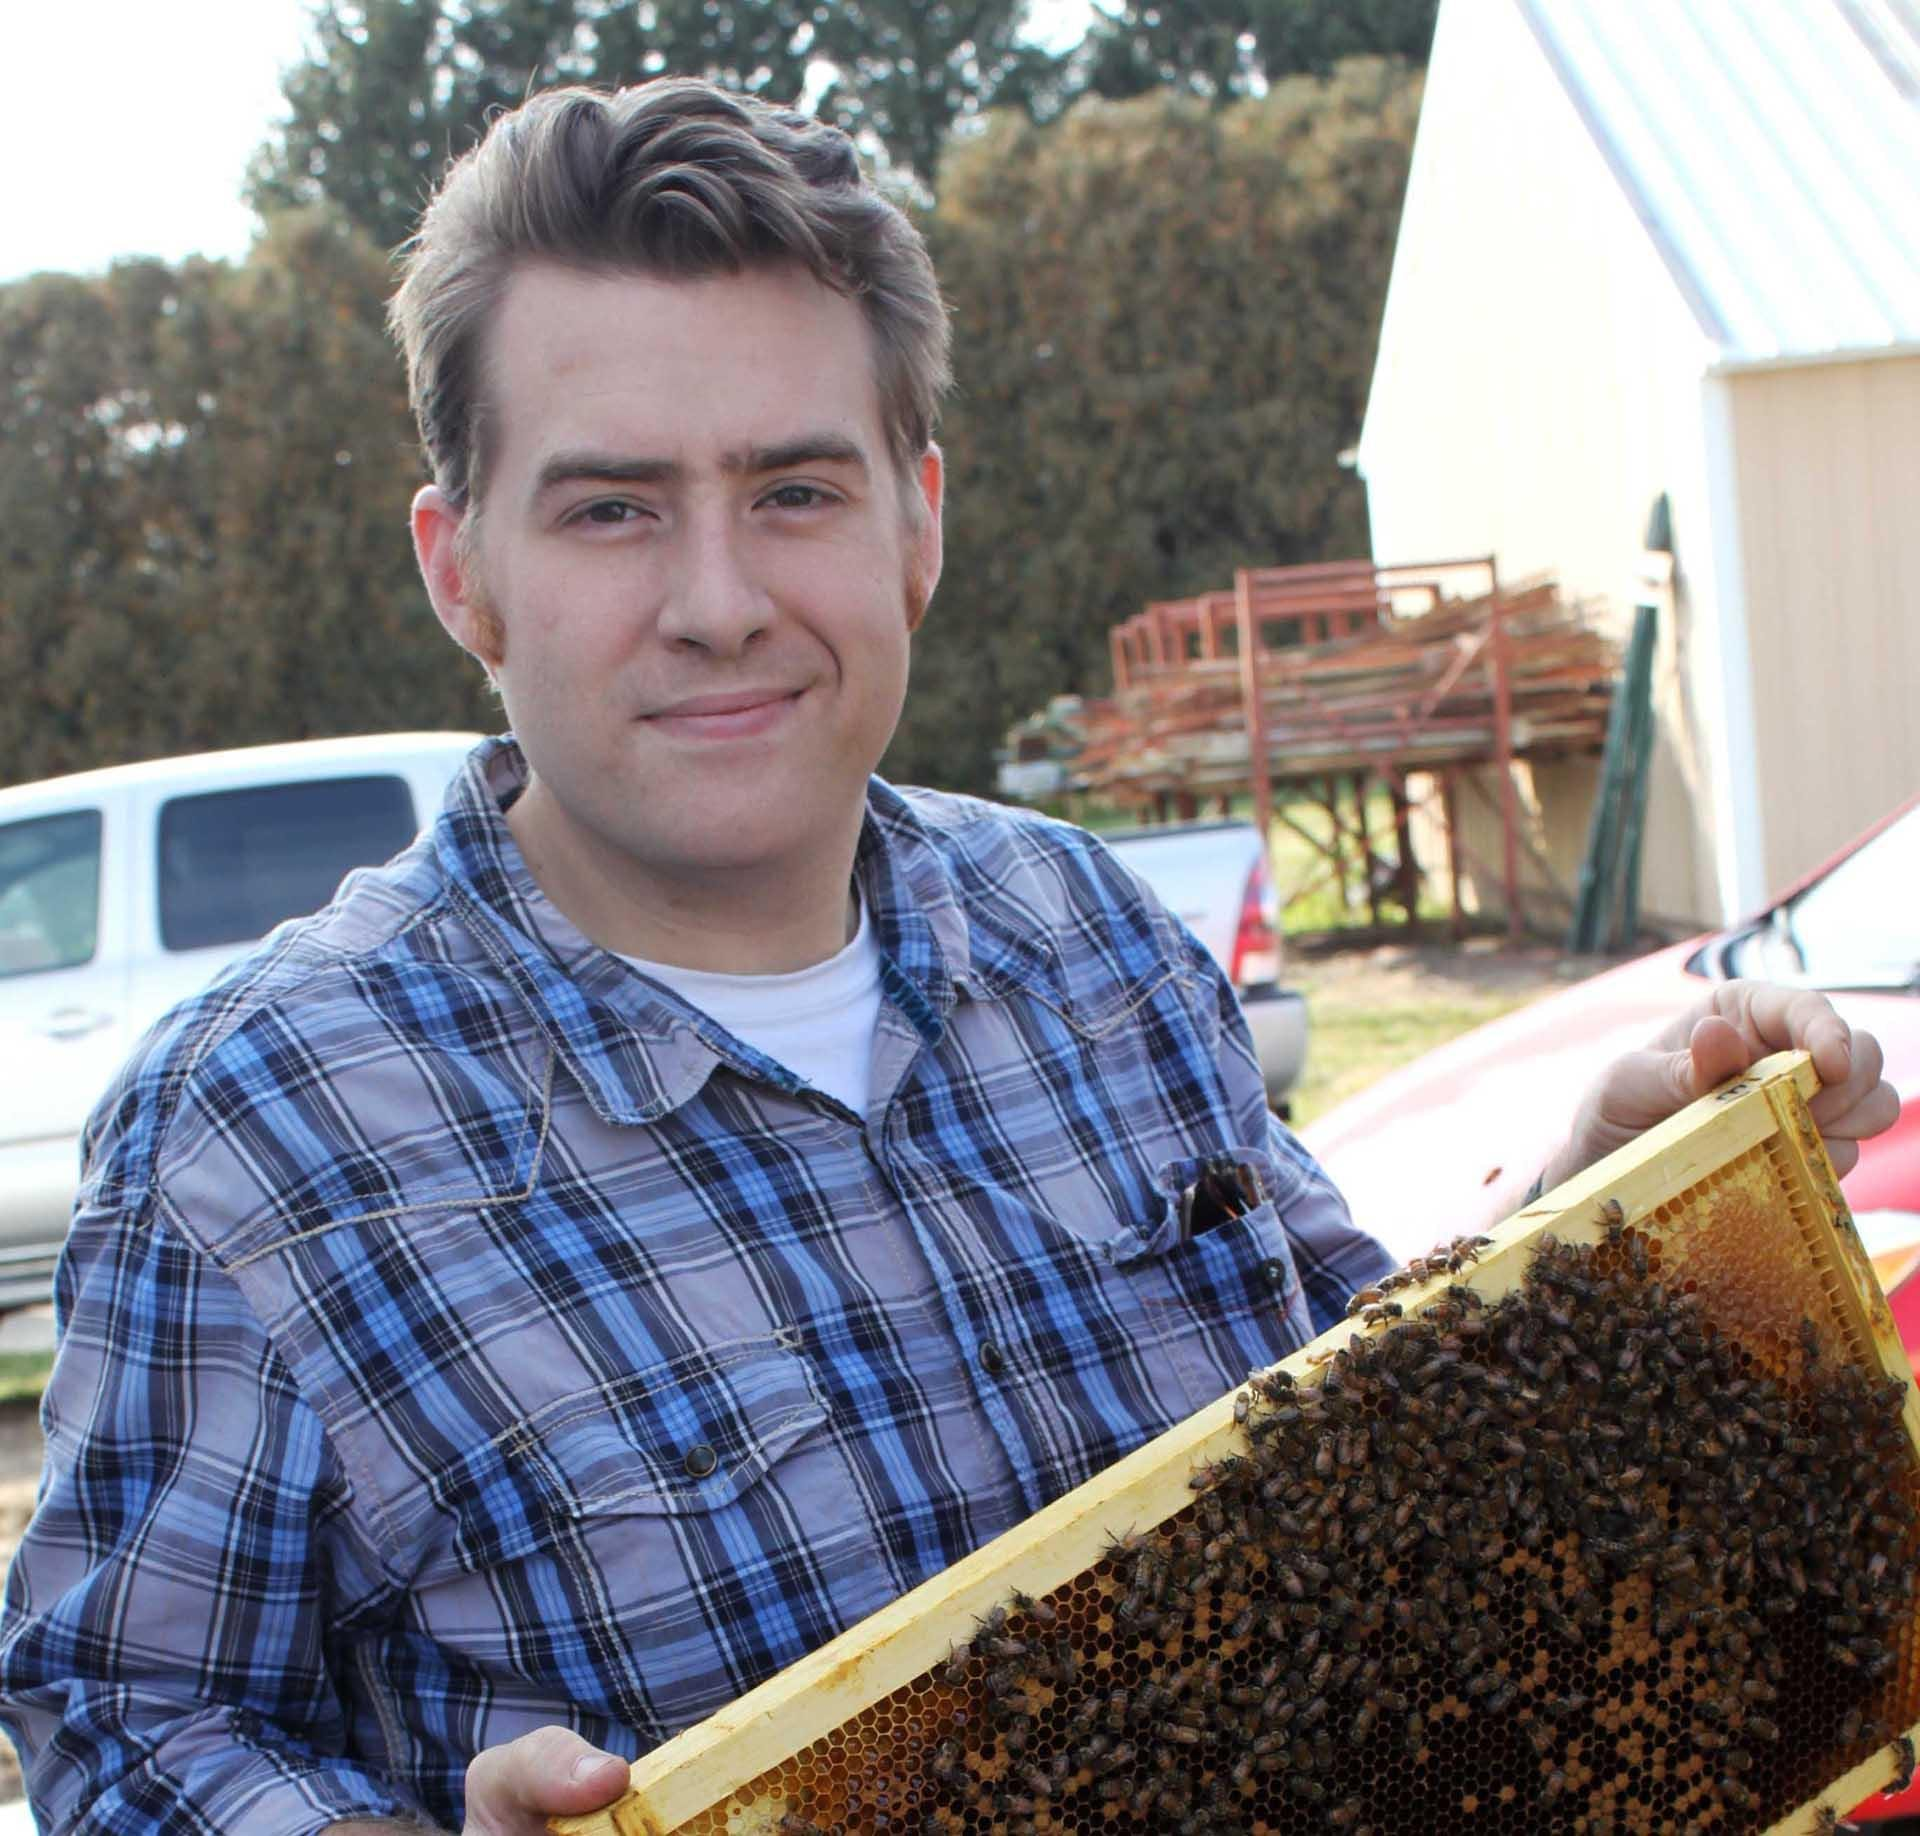 Iowa State University's Adam Dolezal says new research shows that people have contributed to honeybee disease spread. (Photo: Courtesy Adam Dolezal)